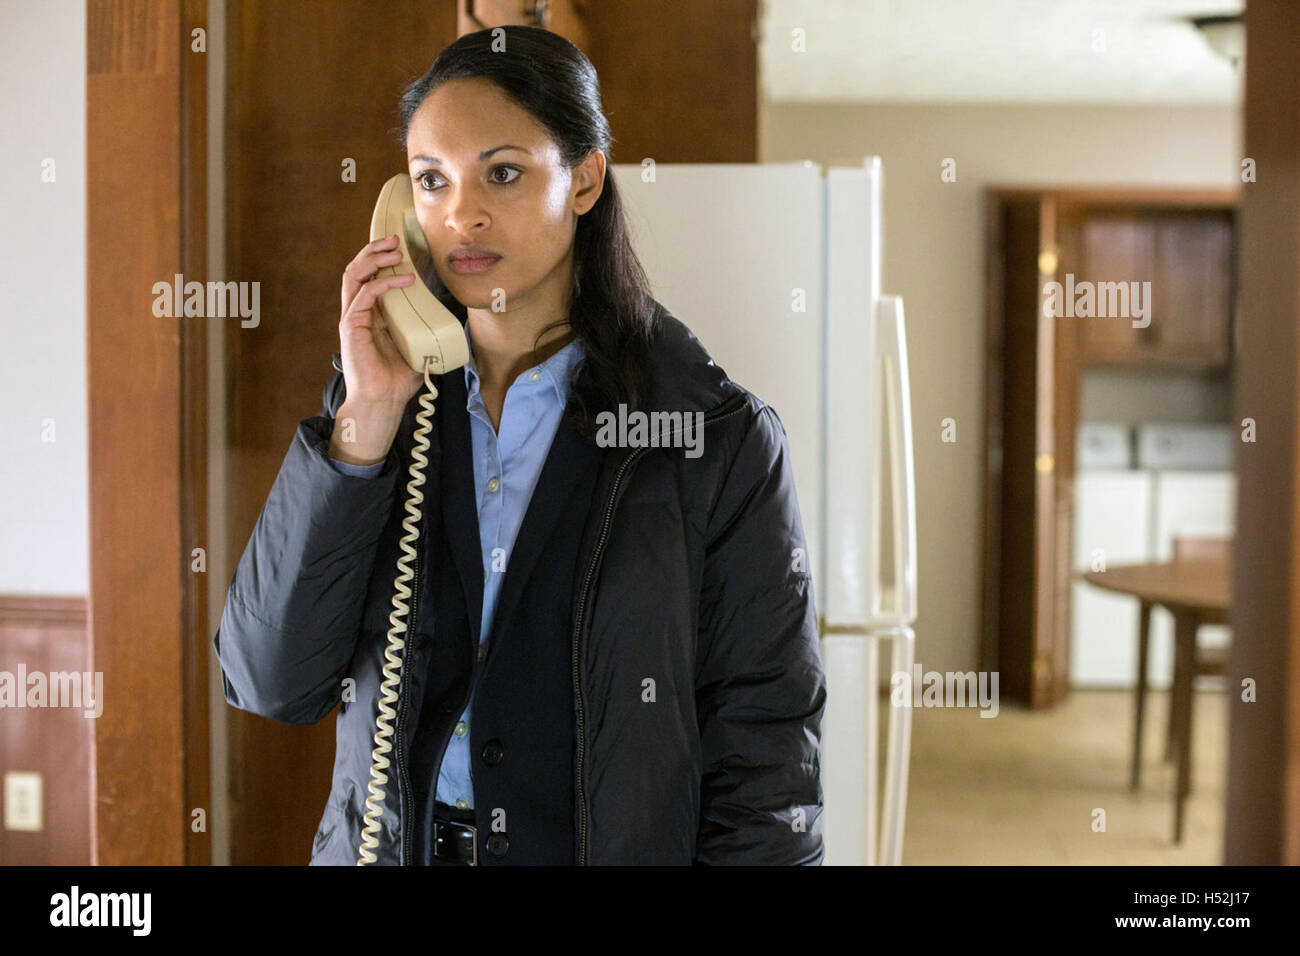 The Accountant is an upcoming American action thriller film directed by Gavin O'Connor and written by Bill Dubuque. Stock Photo